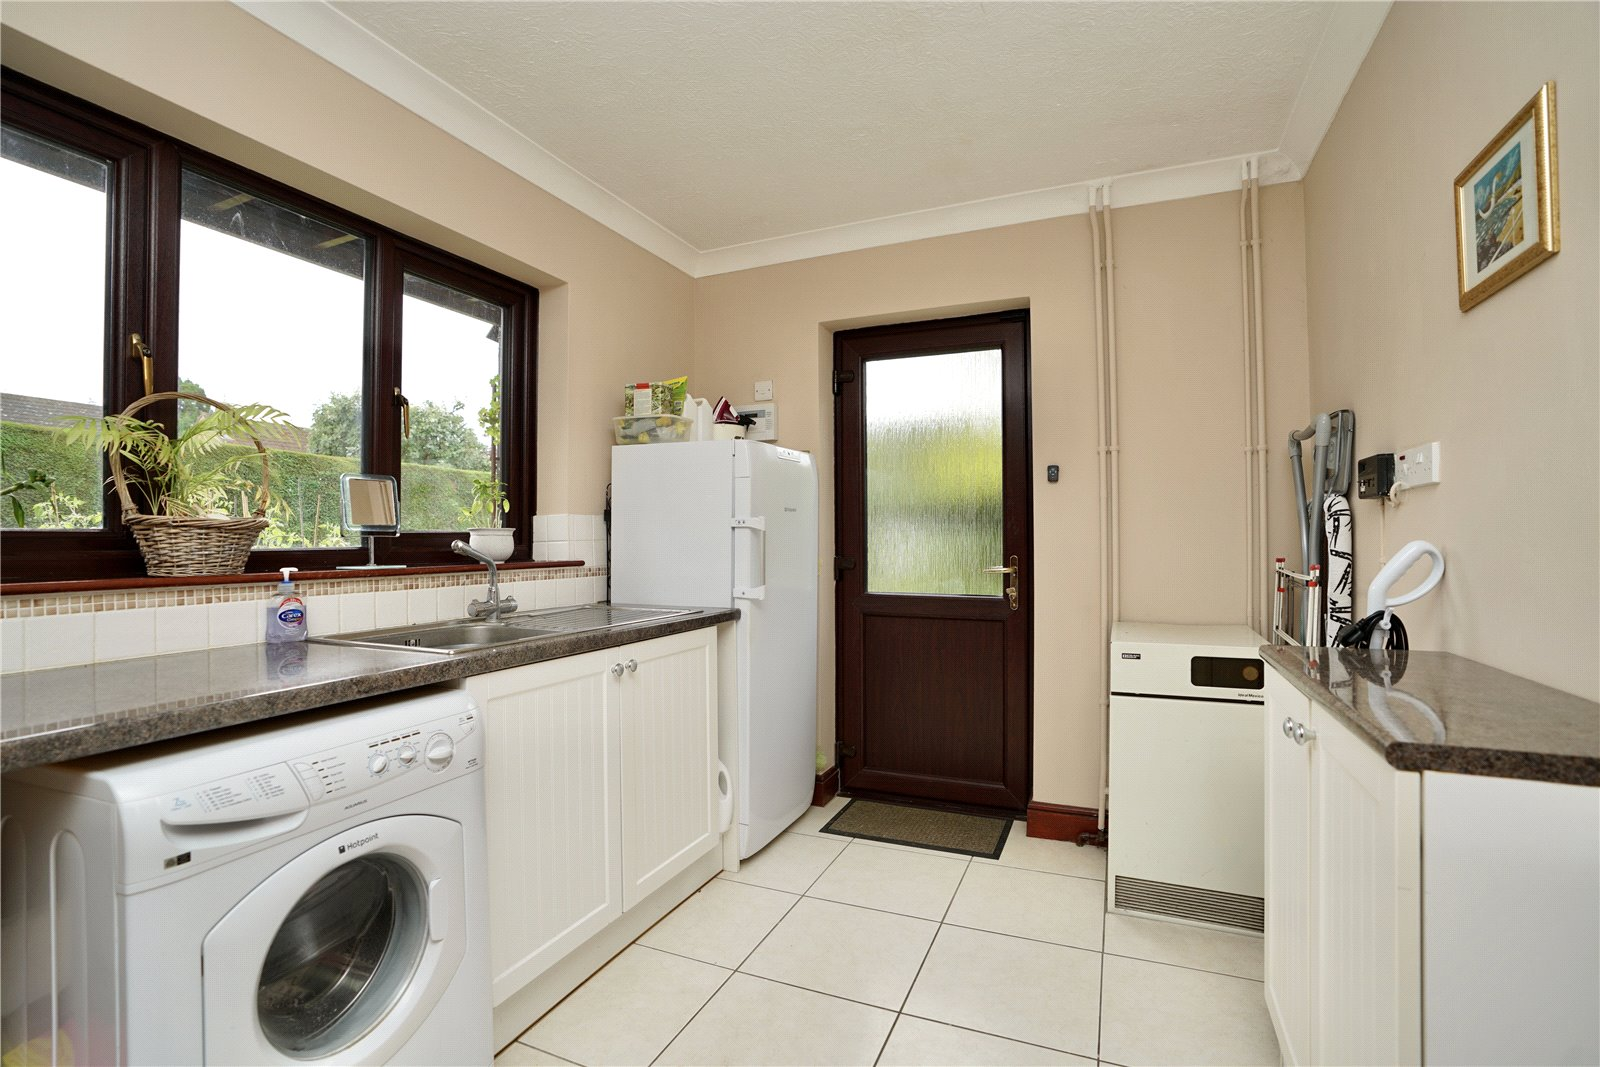 5 bed house for sale in Great North Road, Eaton Ford 3